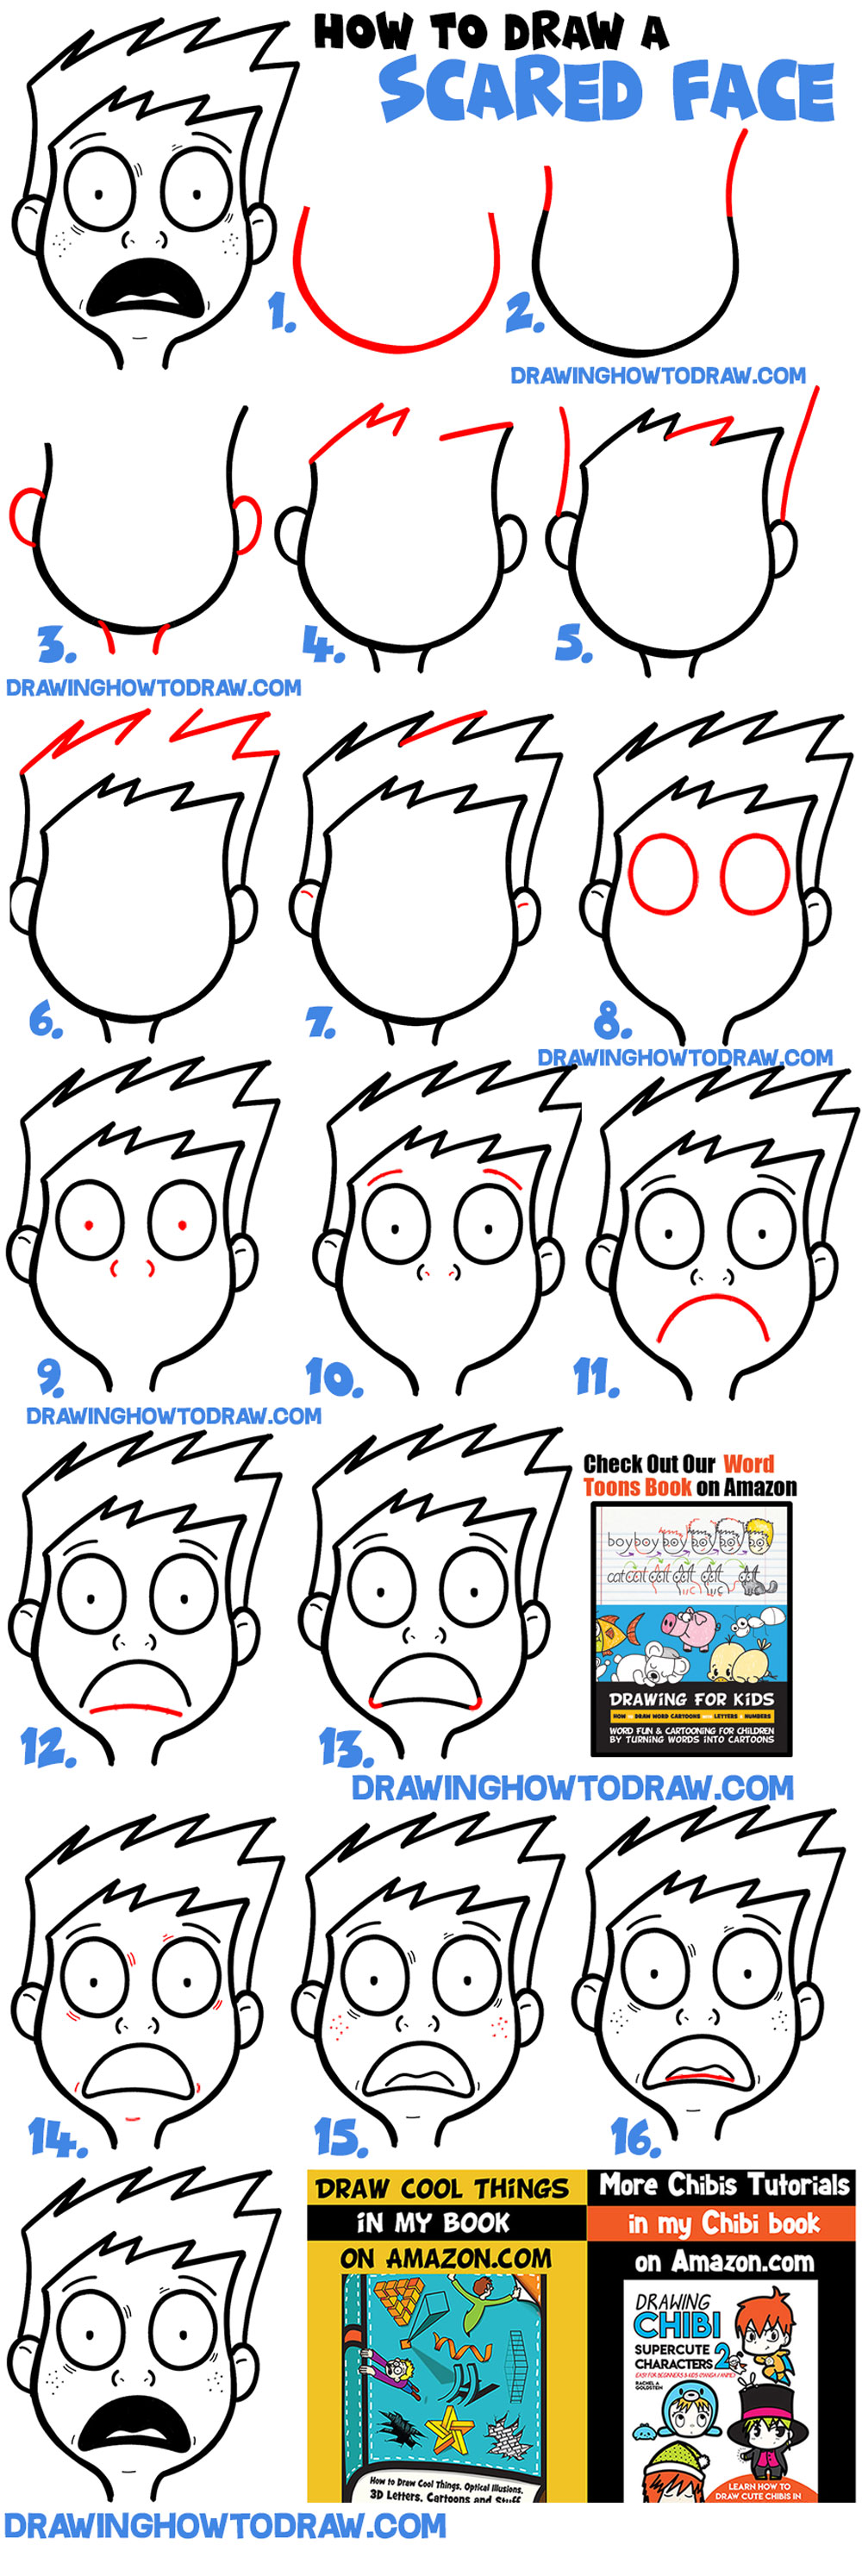 How To Draw Cartoon Facial Expressions Scared Petrified Afraid Terrified Panic How To Draw Step By Step Drawing Tutorials Cartoon Drawings Scared Face Drawing Drawing Expressions